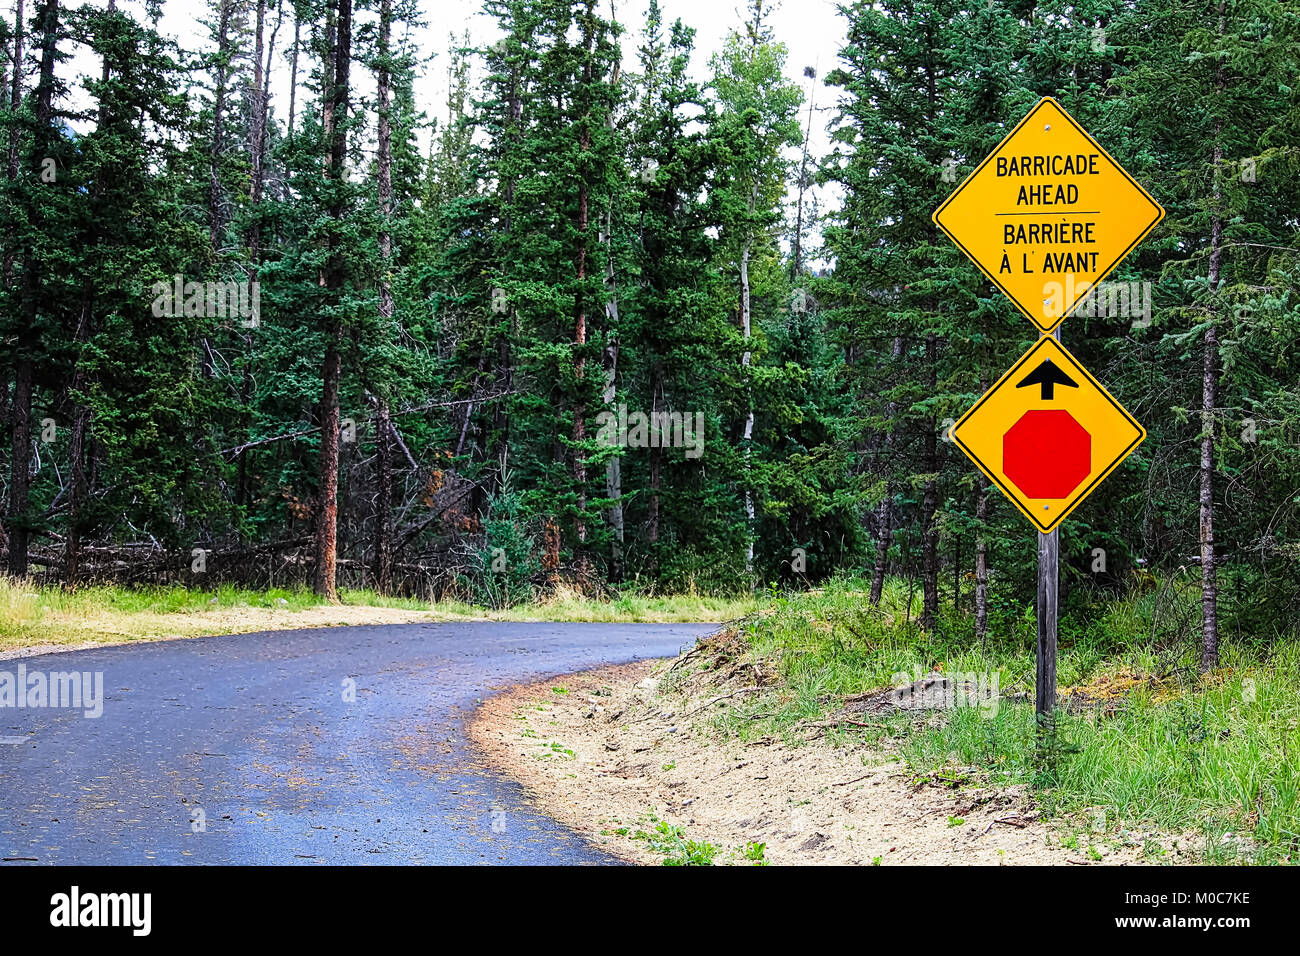 A Stop and Barricade Ahead sign along a road - Stock Image